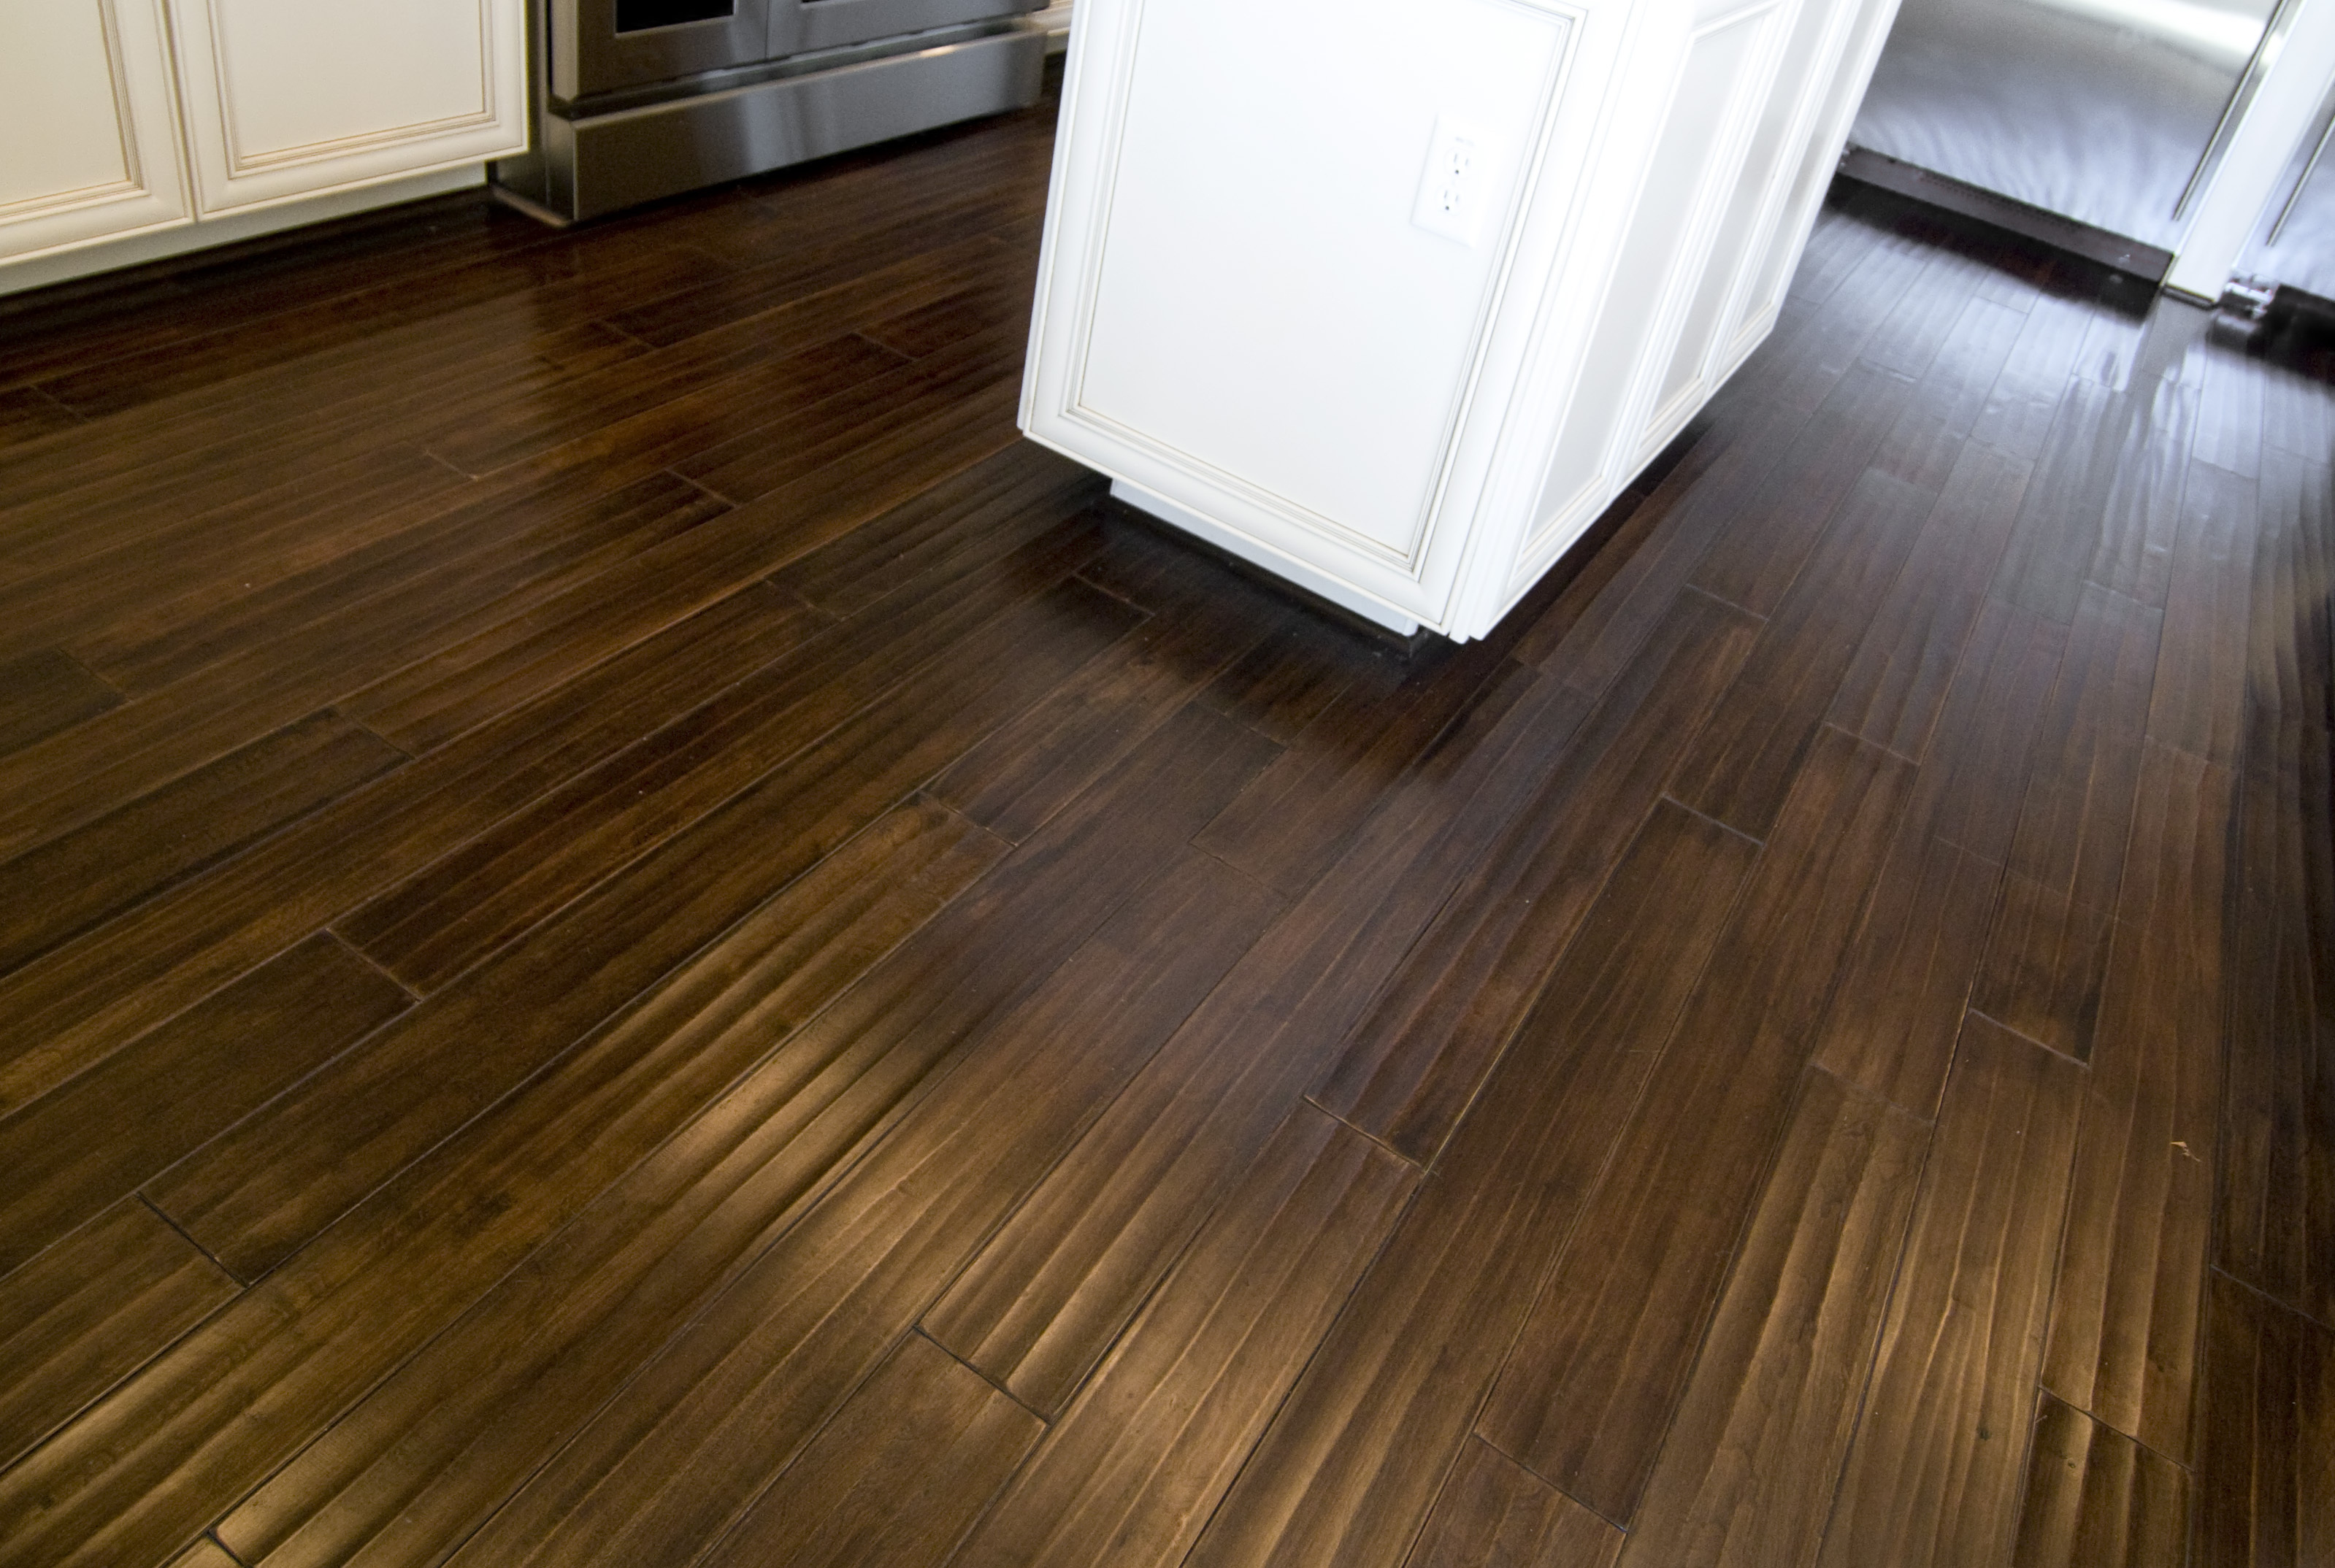 Kitchen Flooring Cost, With Prices to Replace Kitchen Floor